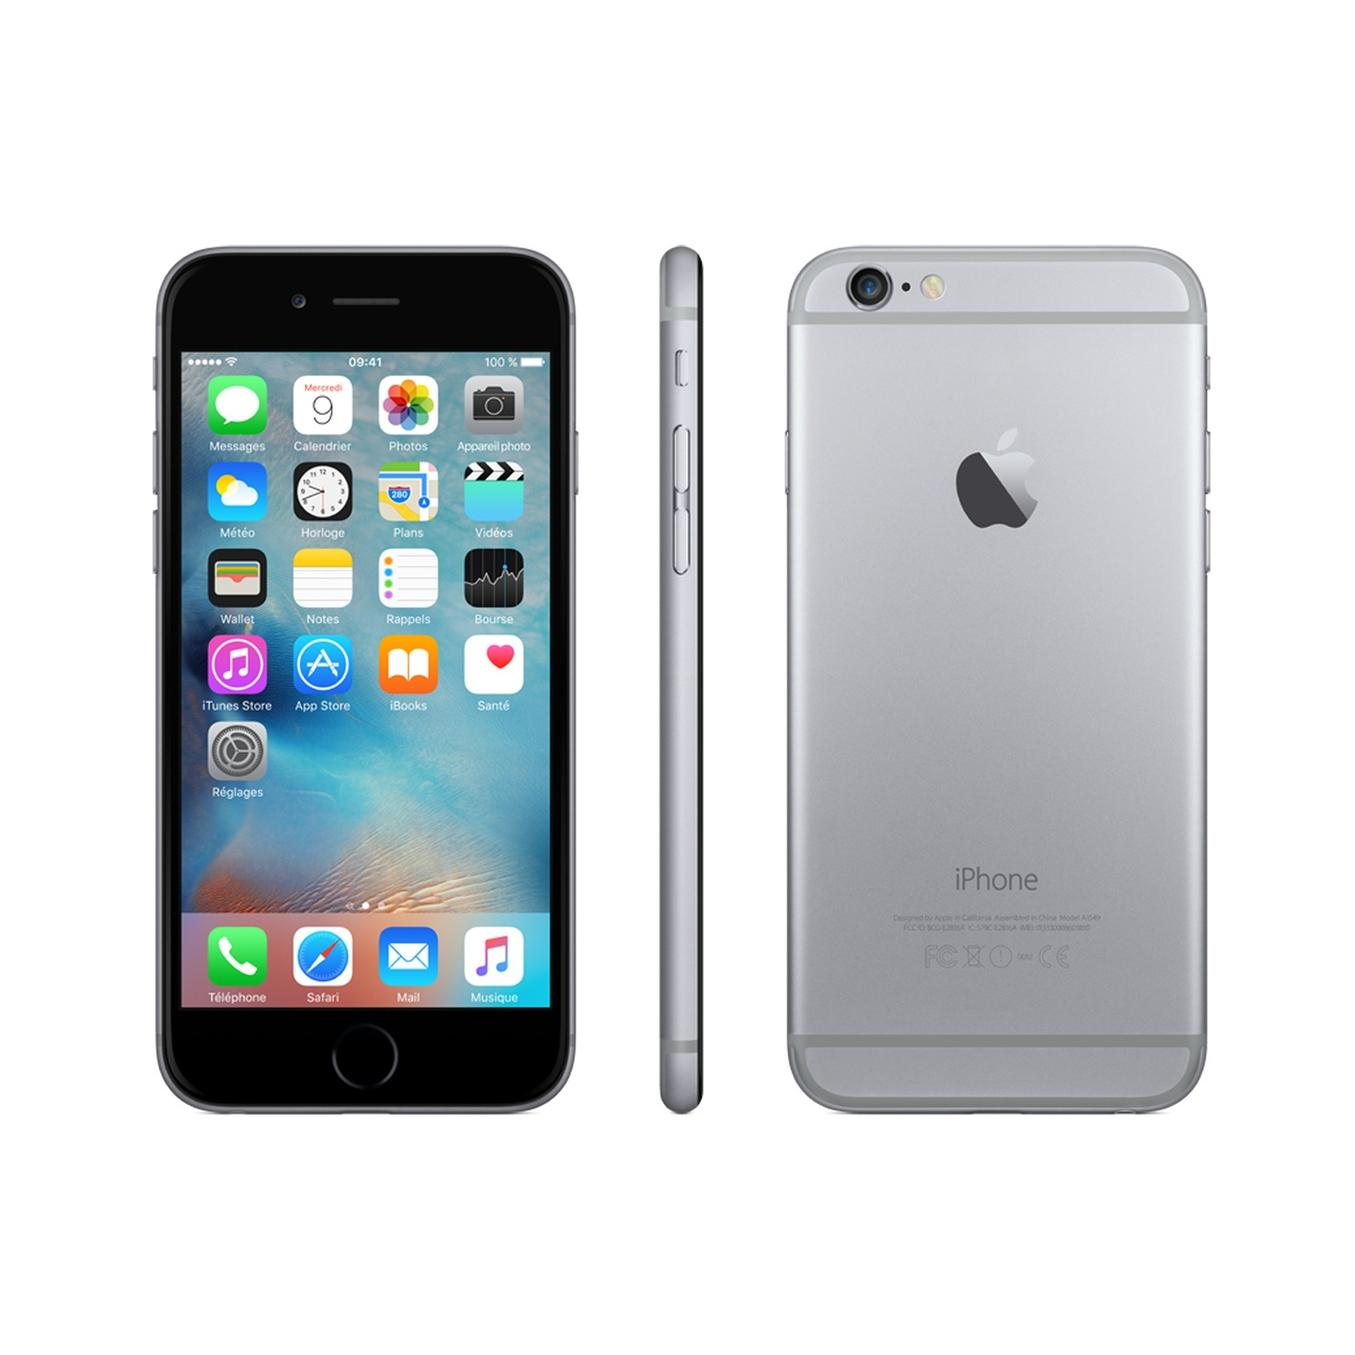 iPhone 6 128 Go - Gris Sidéral - Bouygues